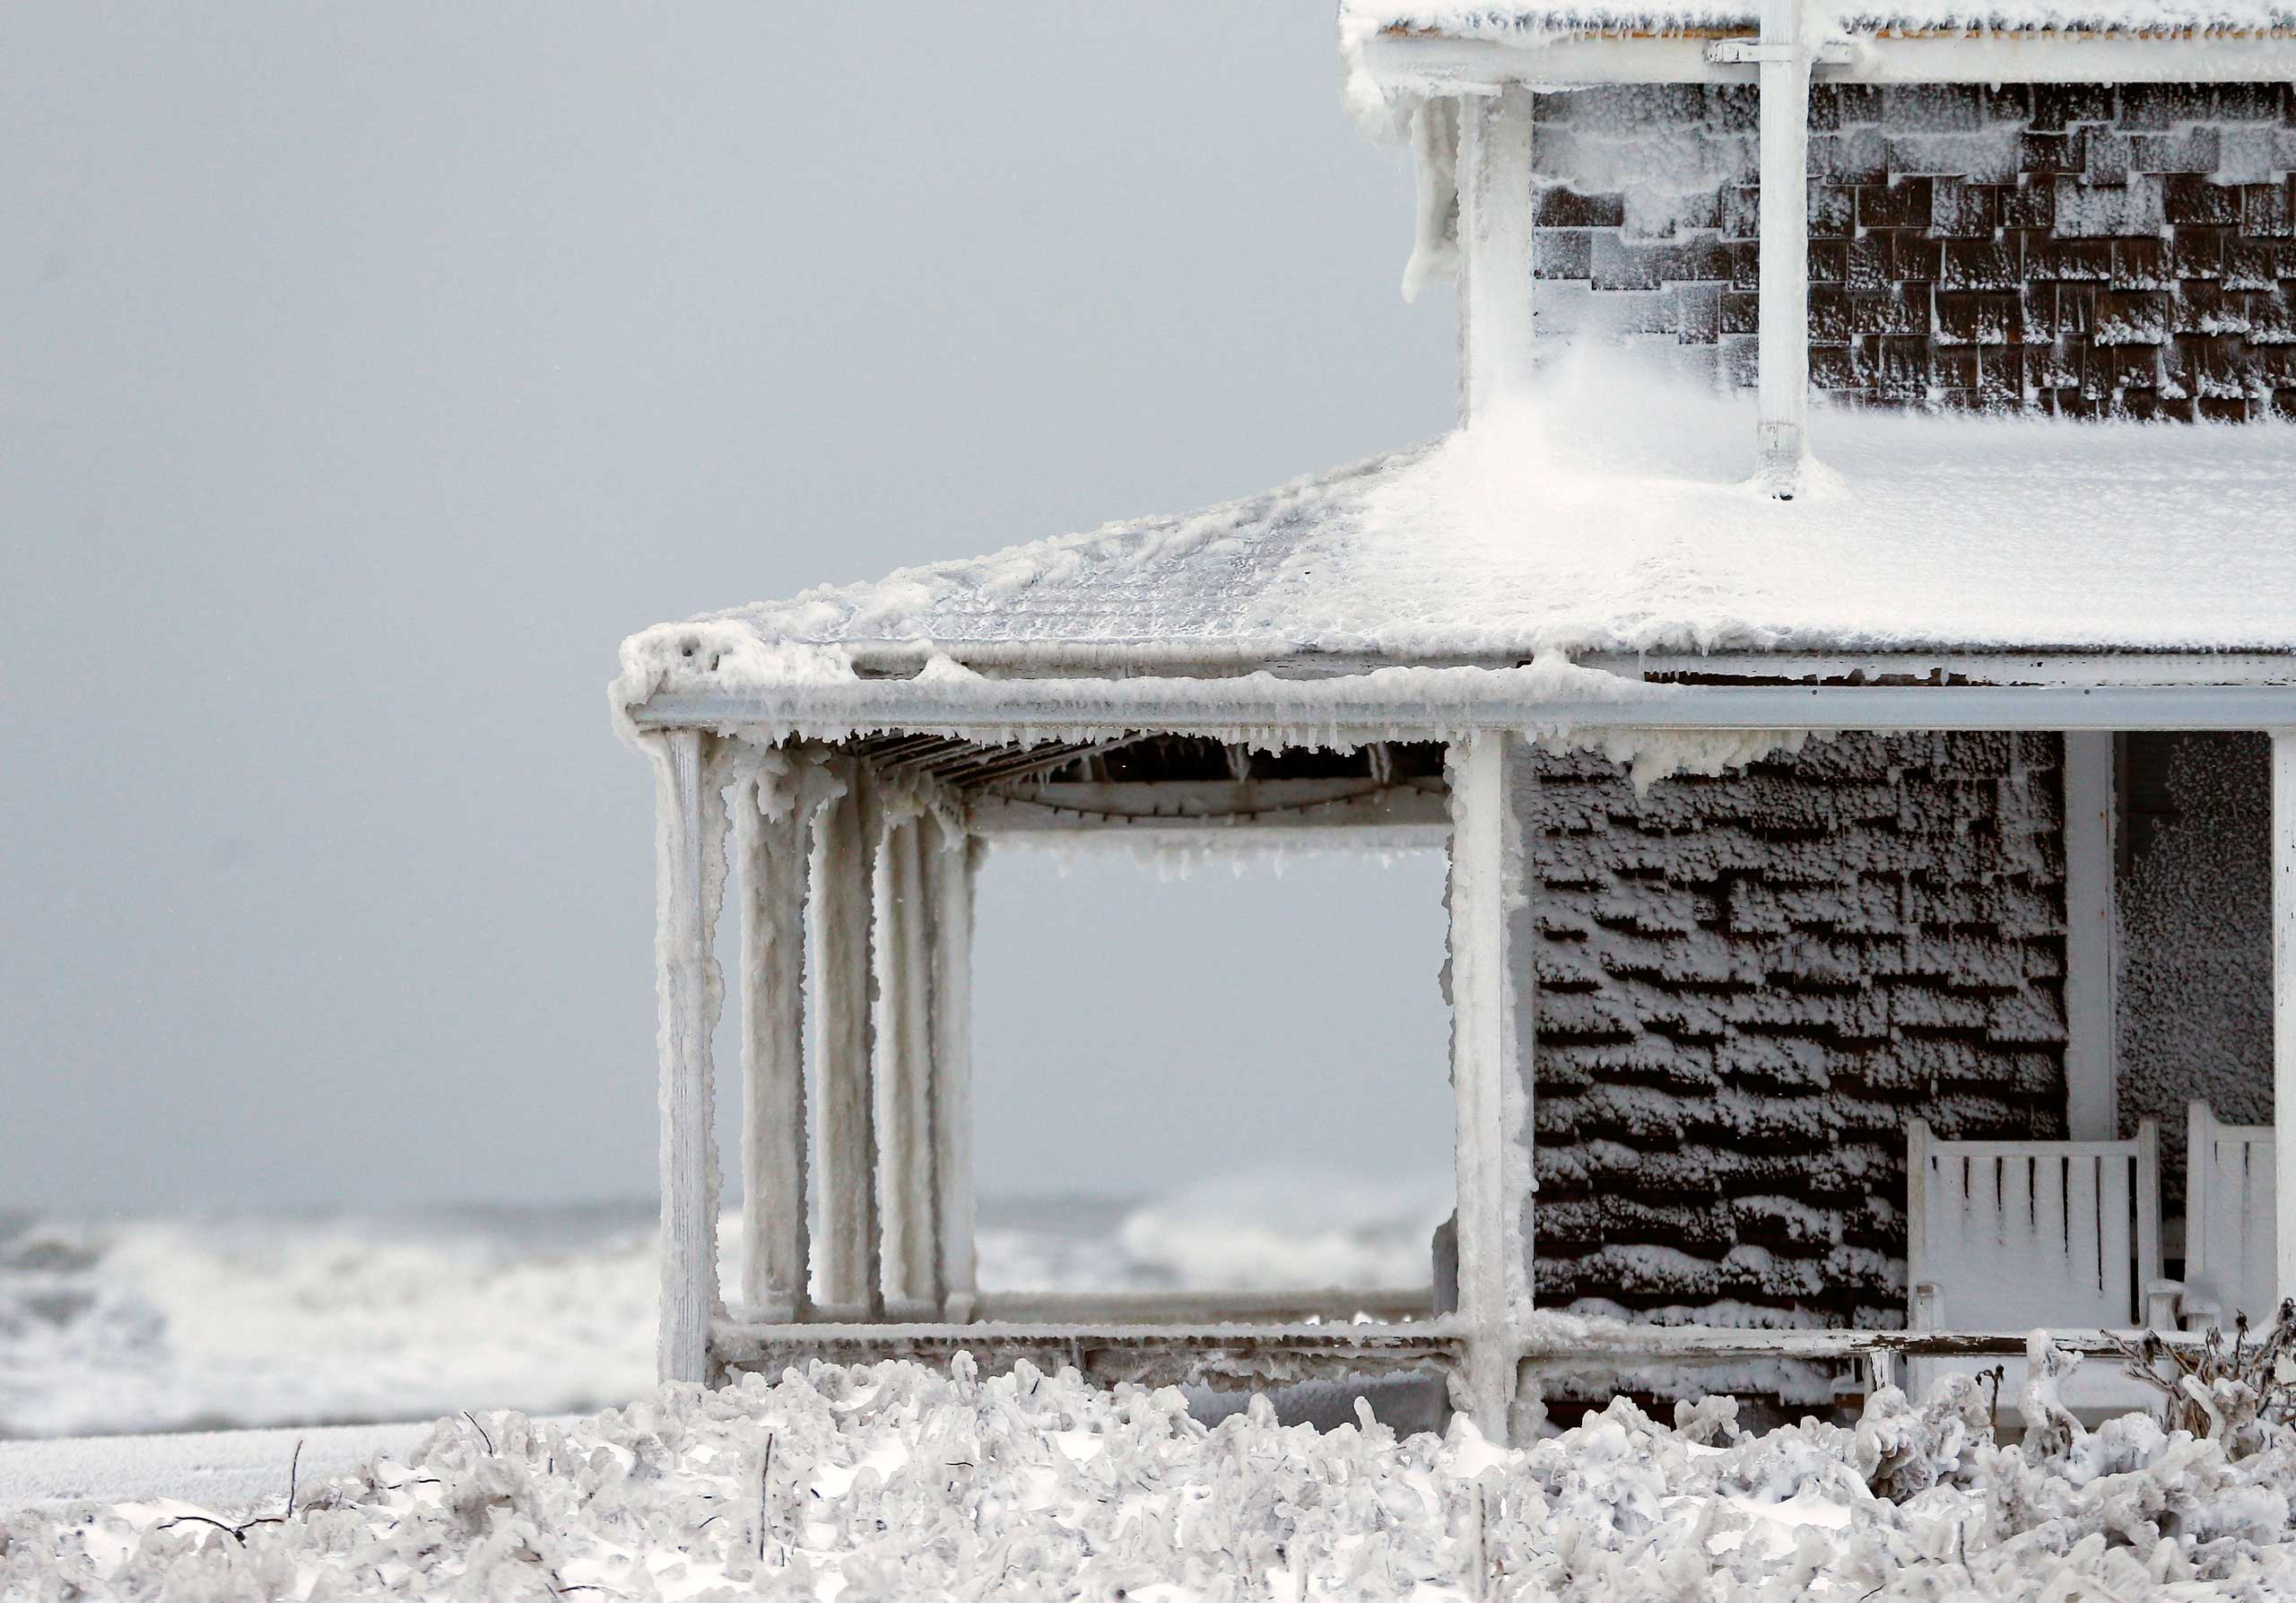 Jan. 28, 2015. Frozen sea spray coats a house the day after a winter storm in Scituate, Mass.